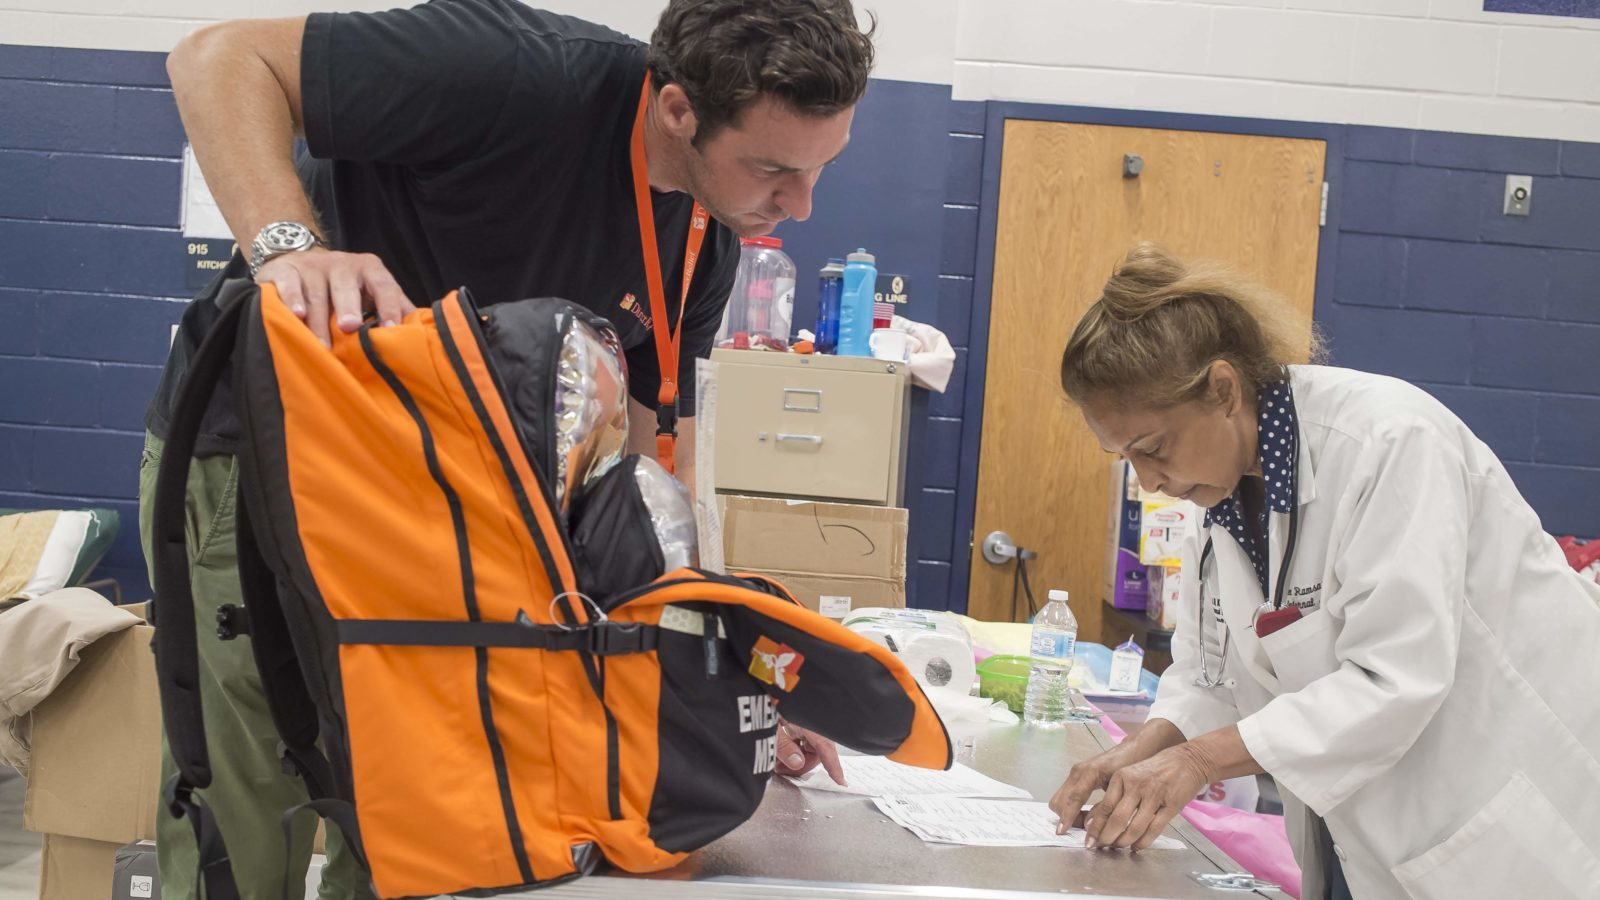 Direct Relief's Andrew MacCalla hands off an emergency medical backpack to Dr. Eileen Ramsaran, who was conducting medical care at a hurricane shelter in Panama City on Saturday, October 13, 2018.  The shelter was filled with medically vulnerable people who had been evacuated from local hospitals. (Photo by Zack Wittman for Direct Relief)